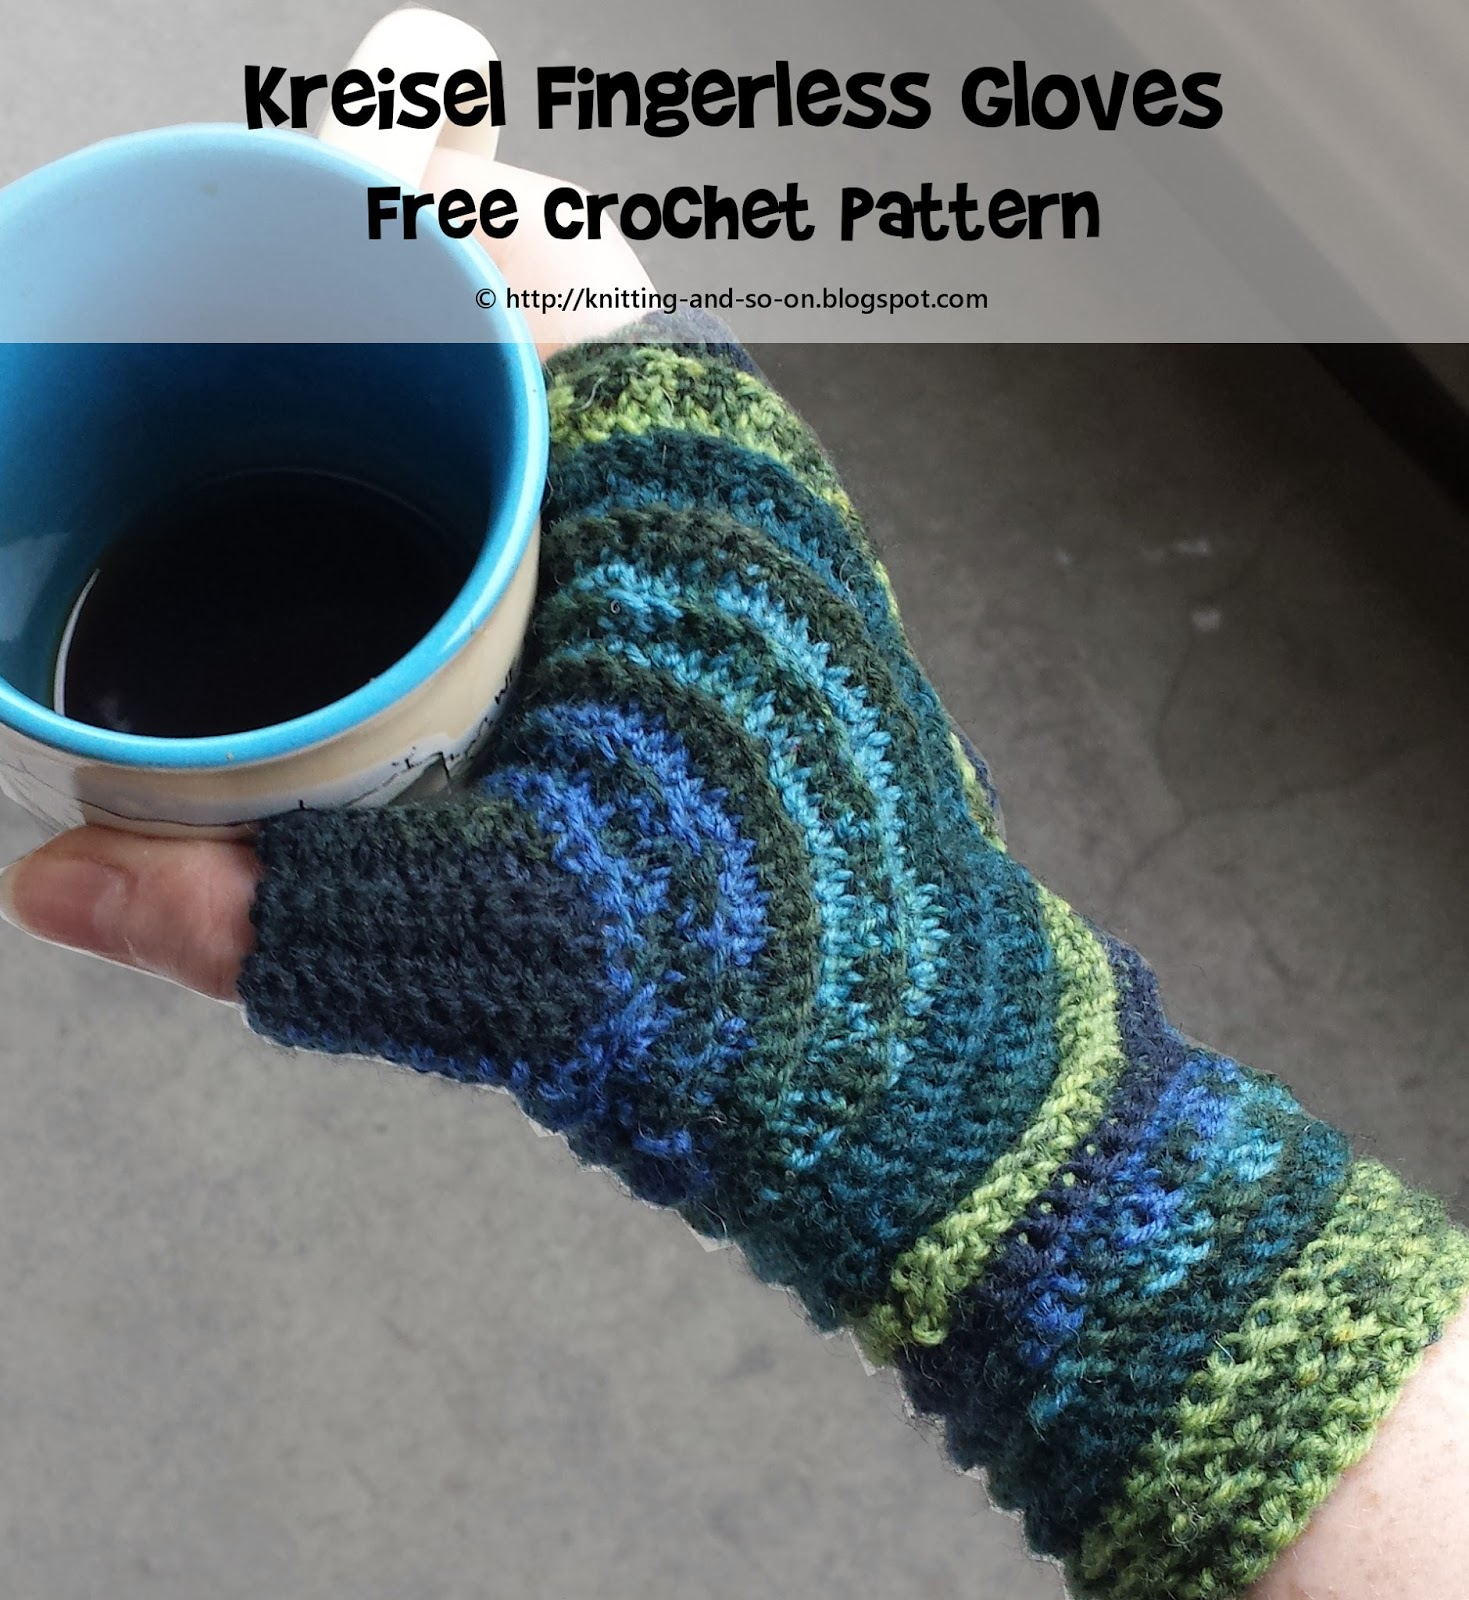 Knitting and so on: Kreisel Fingerless Gloves